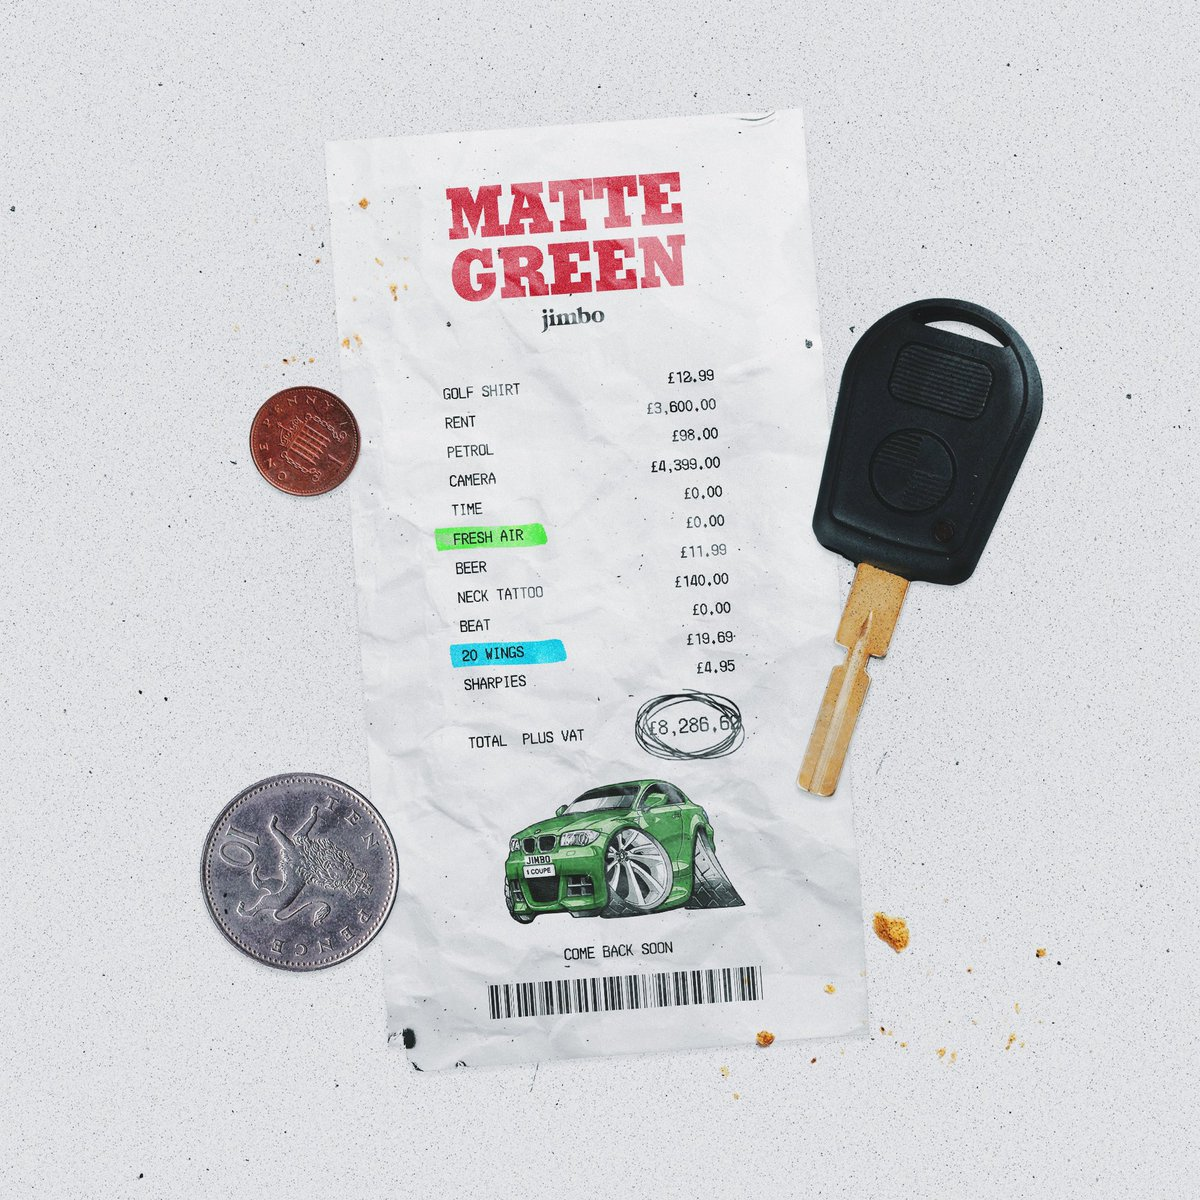 'MATTE GREEN' dropping this Sunday on all platforms (including a music video on YouTube)